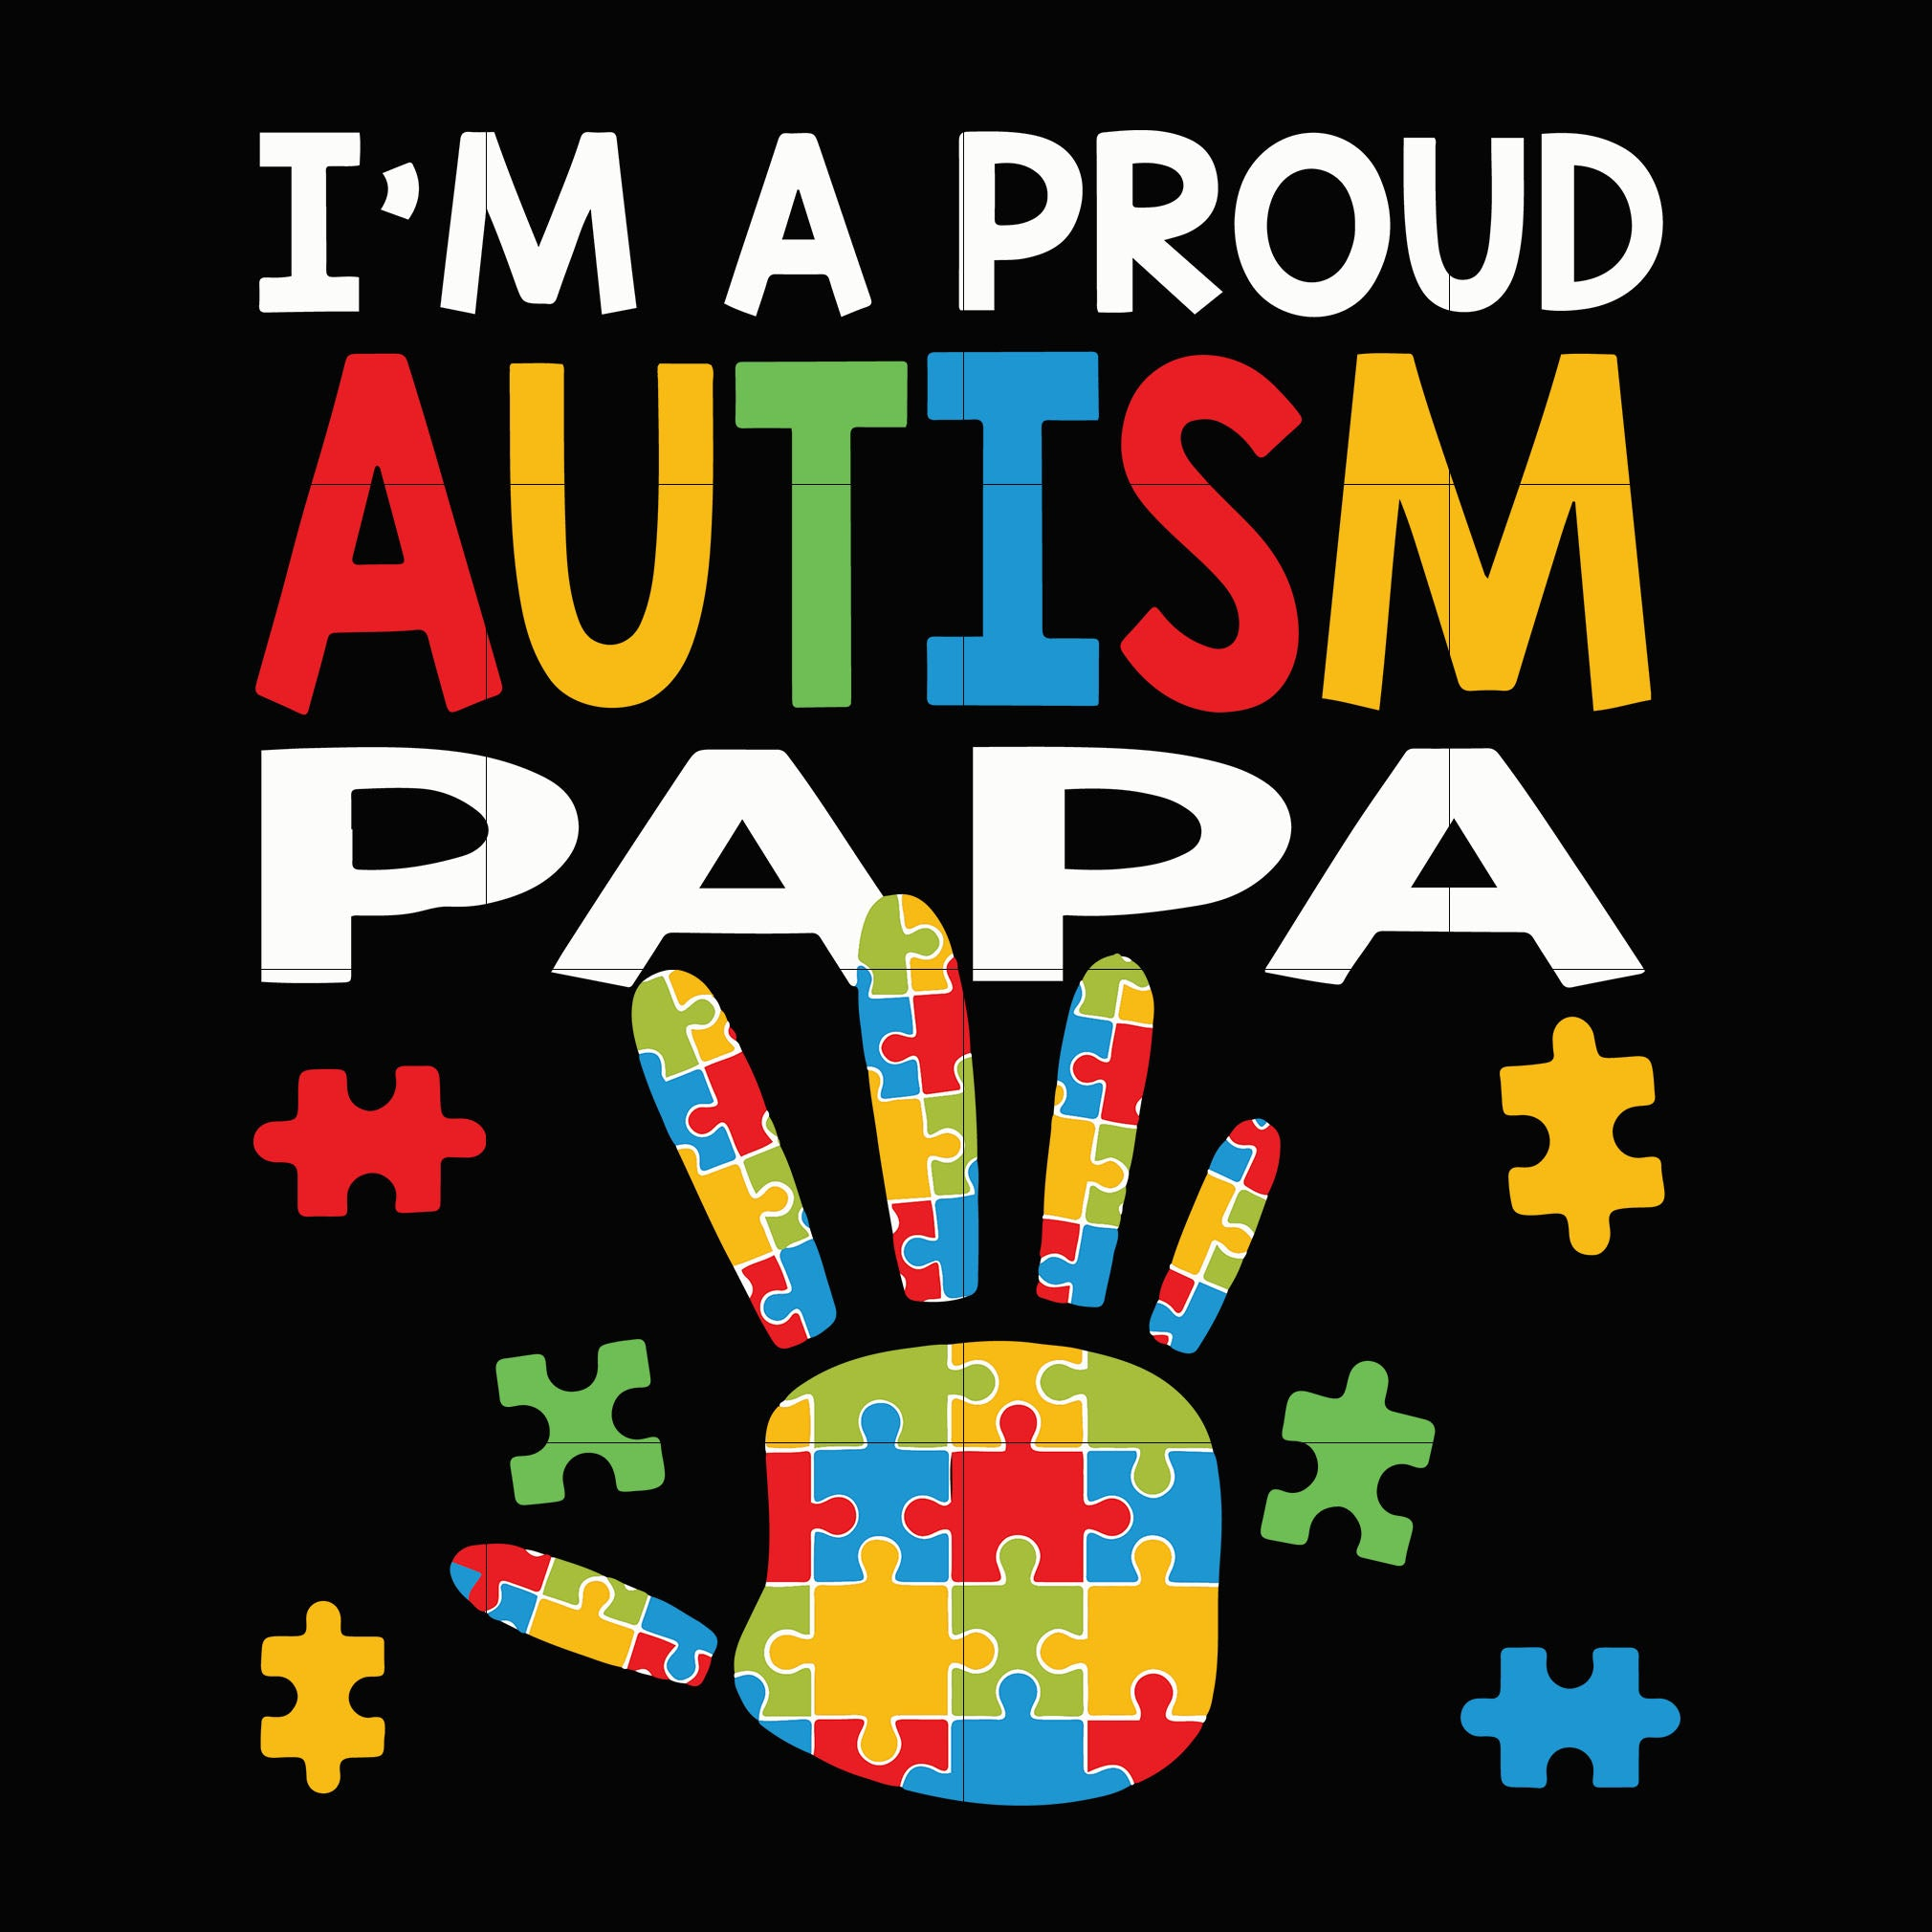 I am a proud autism papa svg, autism svg, autism awareness svg, dxf, eps, png digital file